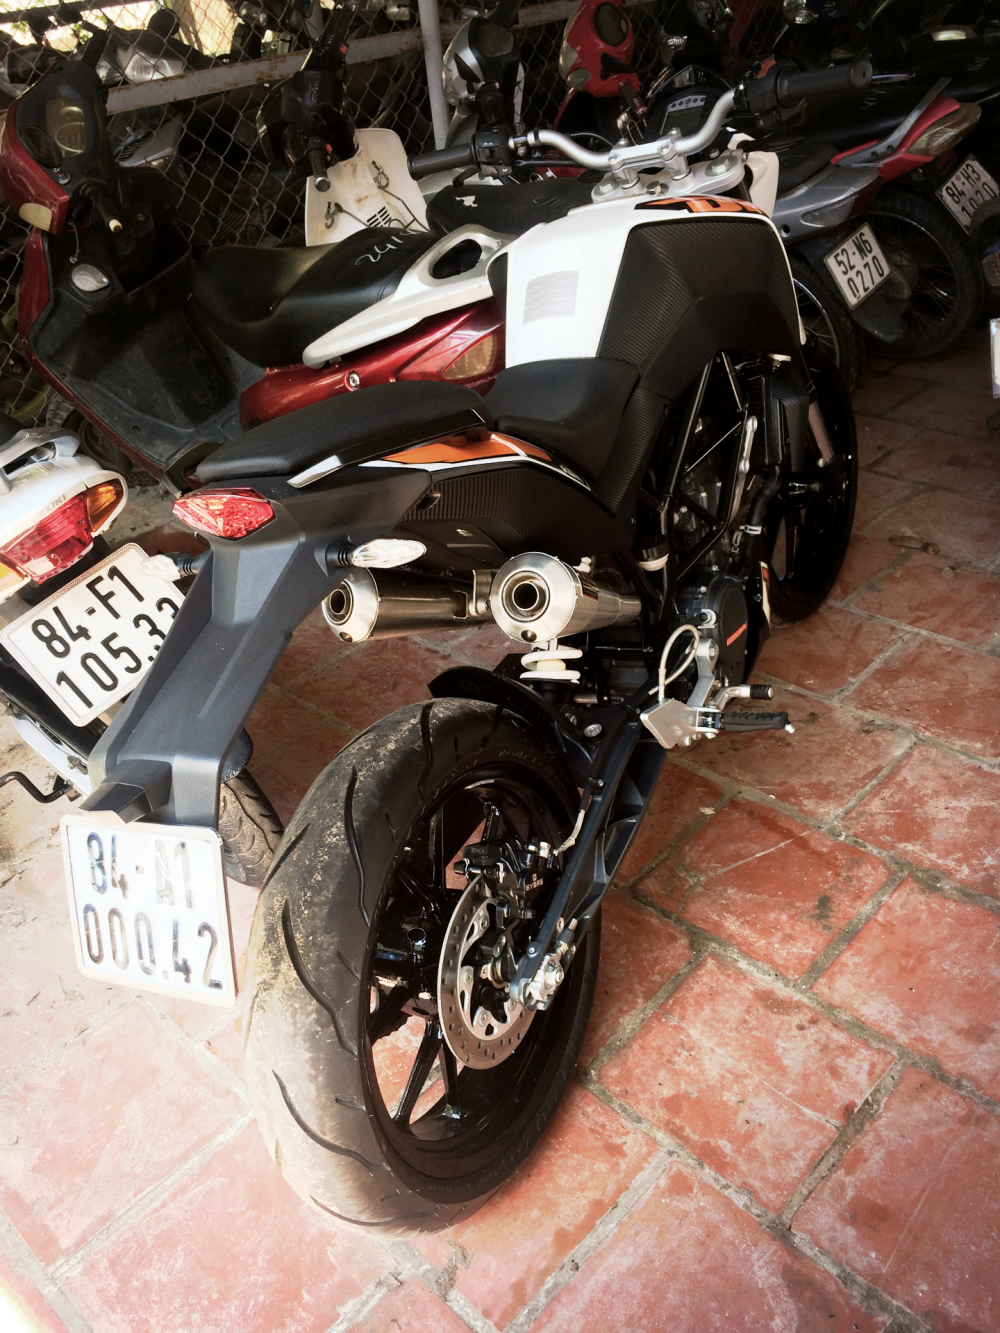 Ban gap KTM duke 200 no ABS gia re - 6